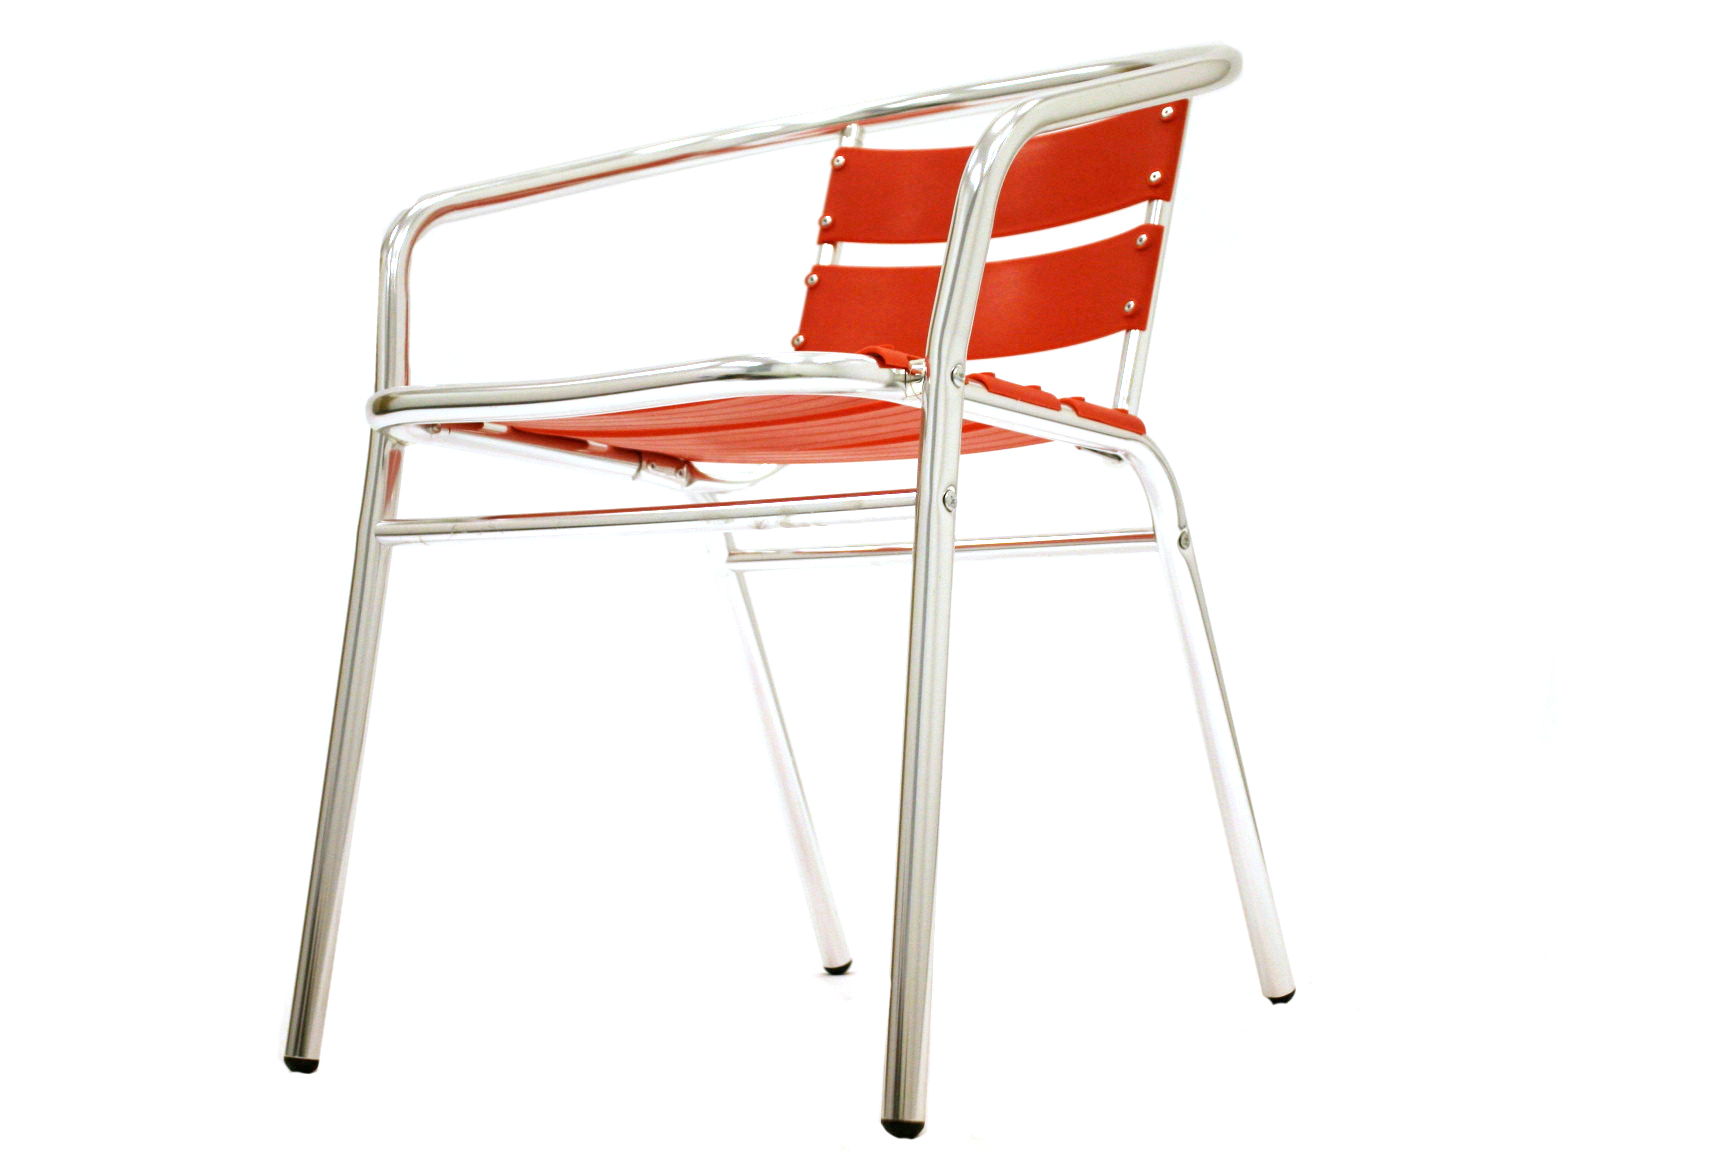 Lightweight tubular aluminium frame with a red plastic seat & back, BE Event Hire